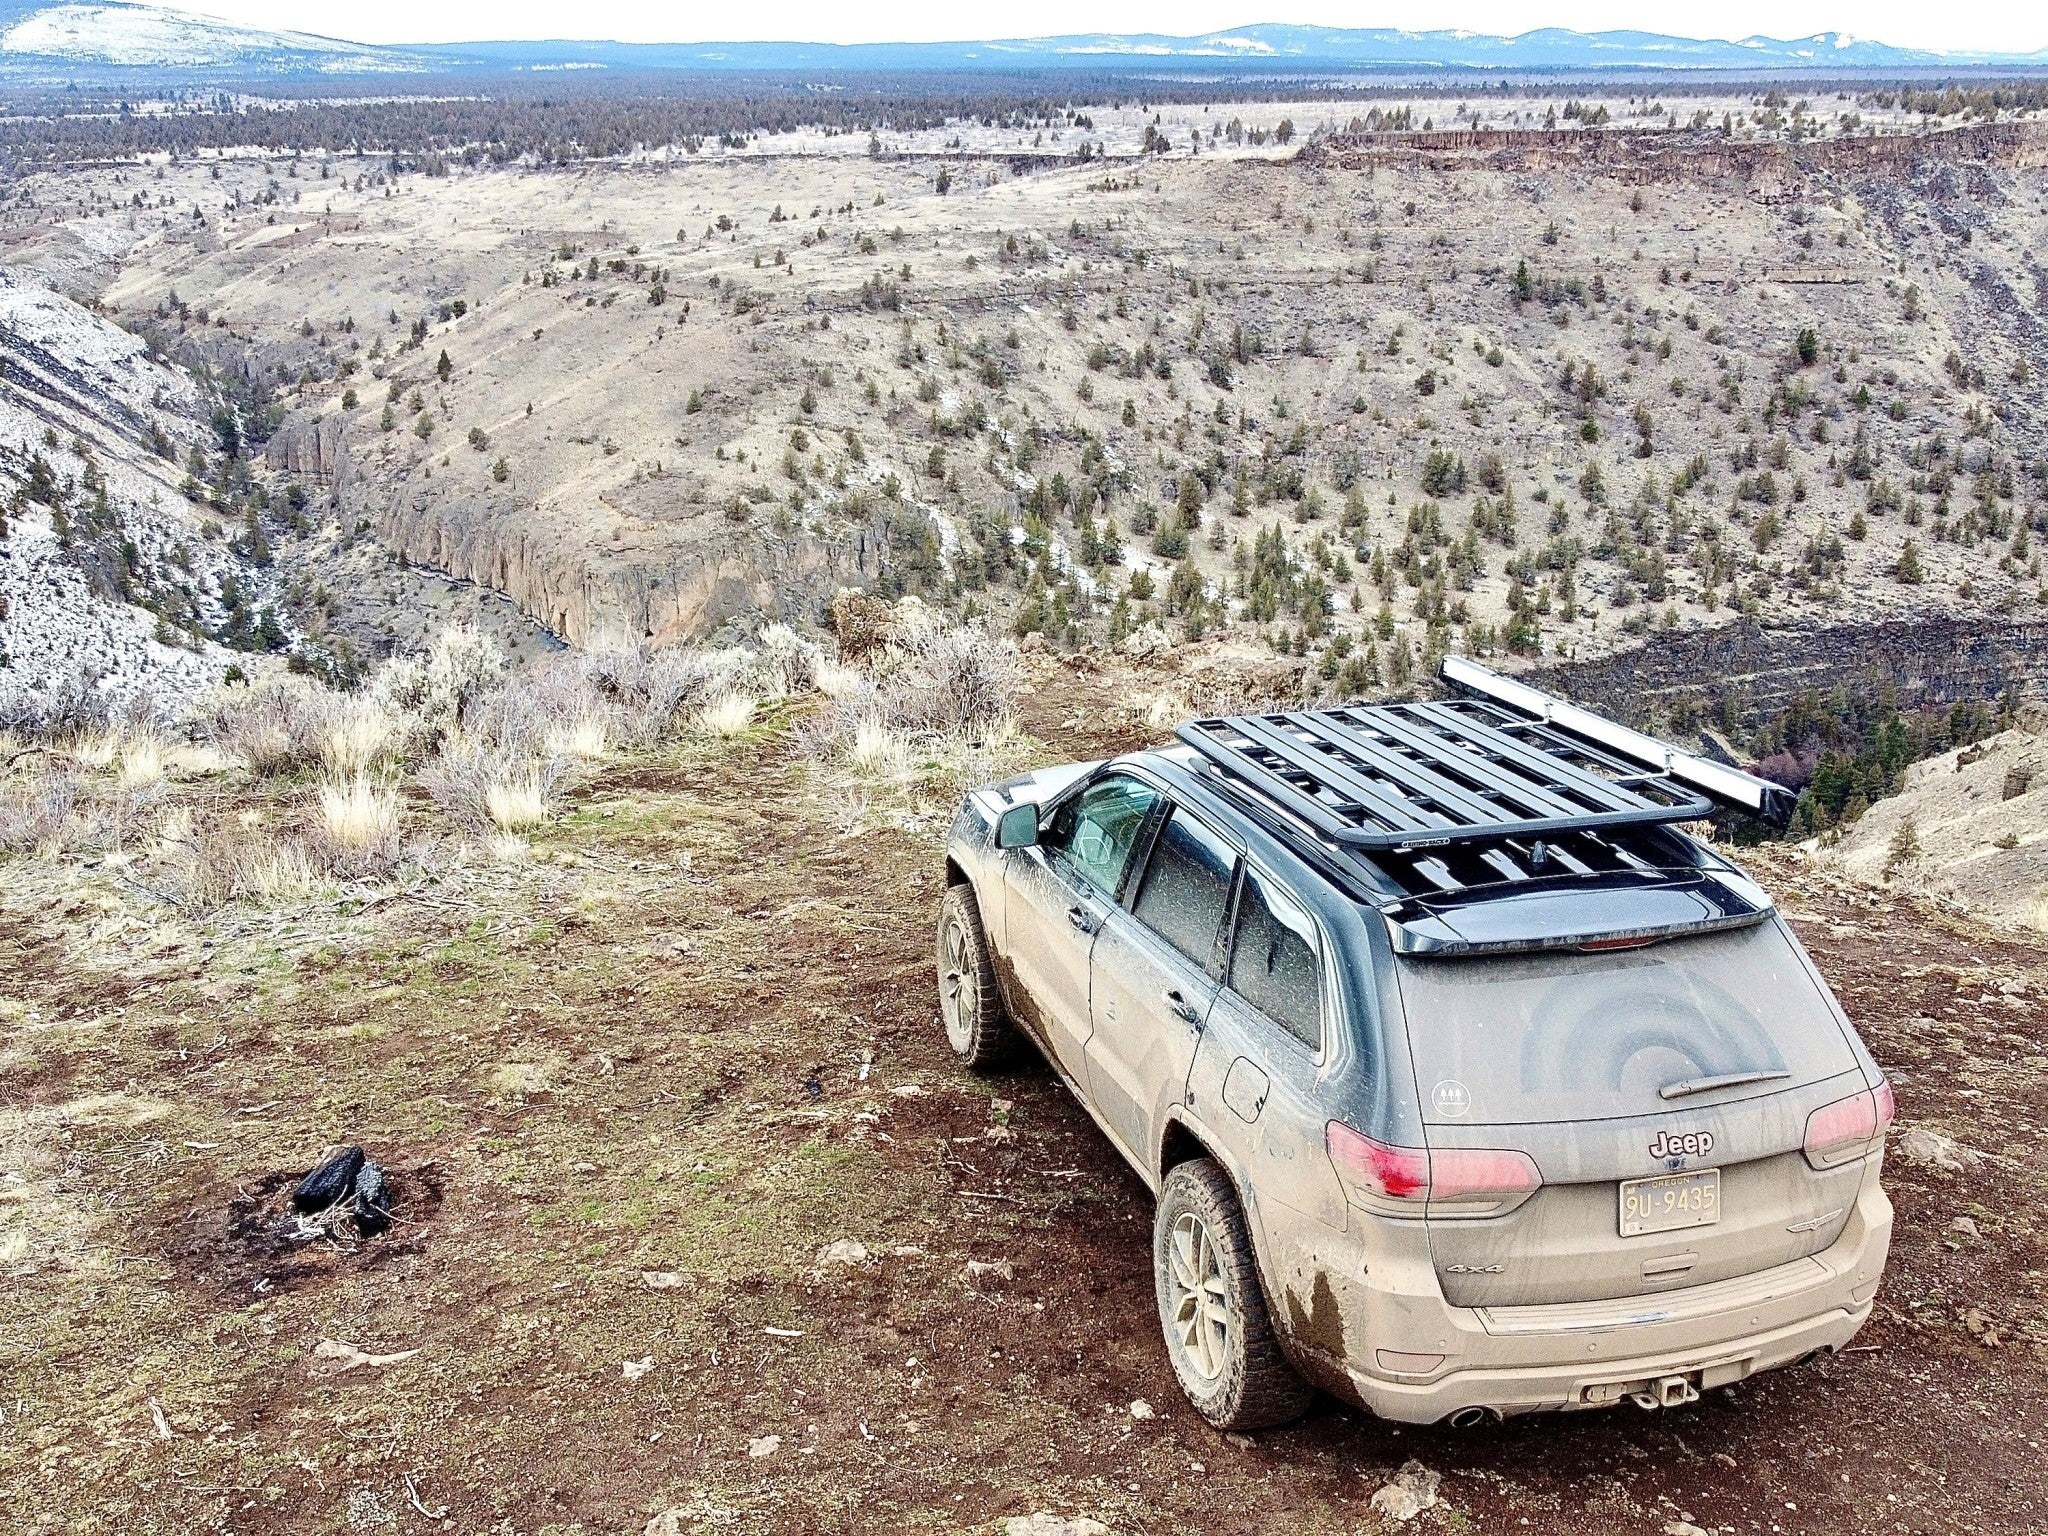 Best Roof Racks for Off-Road